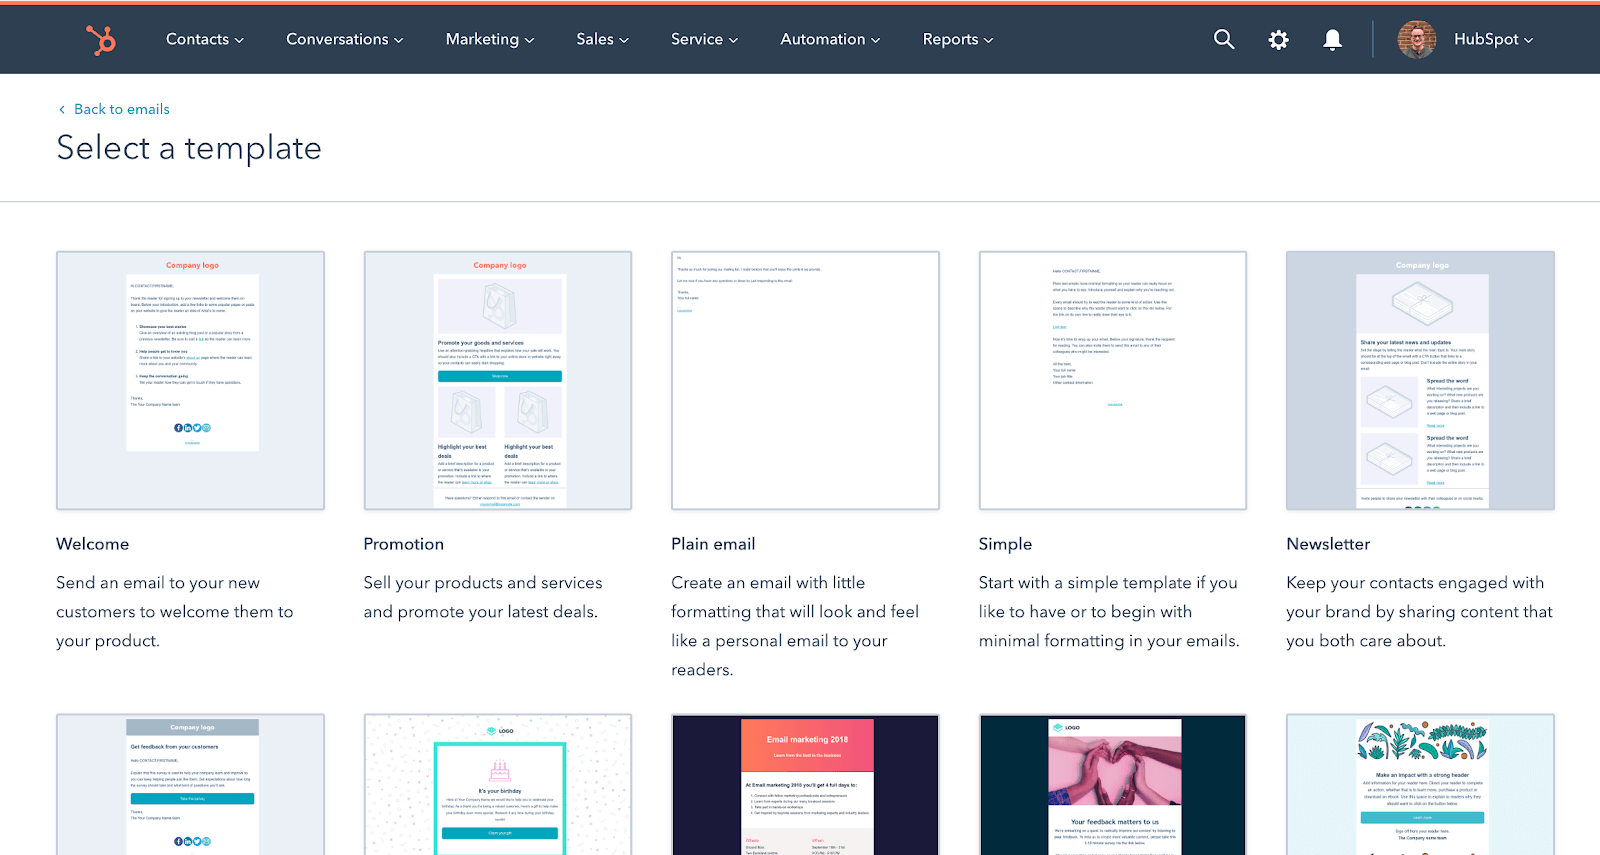 HubSpot email marketing templates